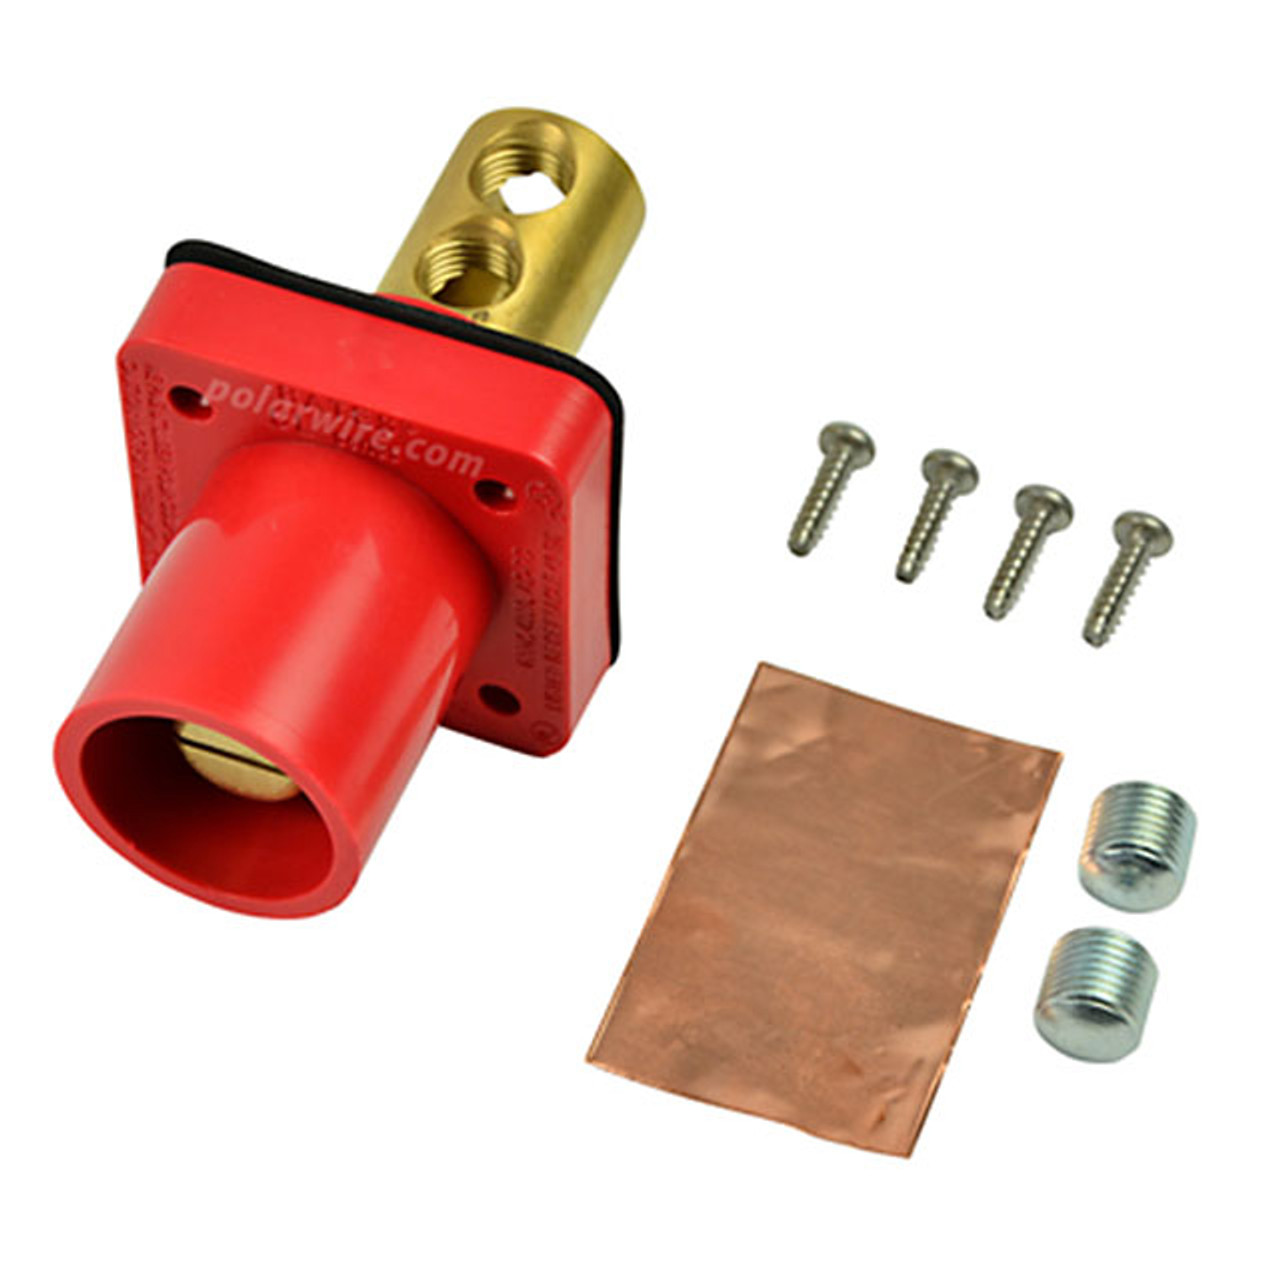 CAM LOCK 400A PANEL MALE RED SET SCREW 2-2/0